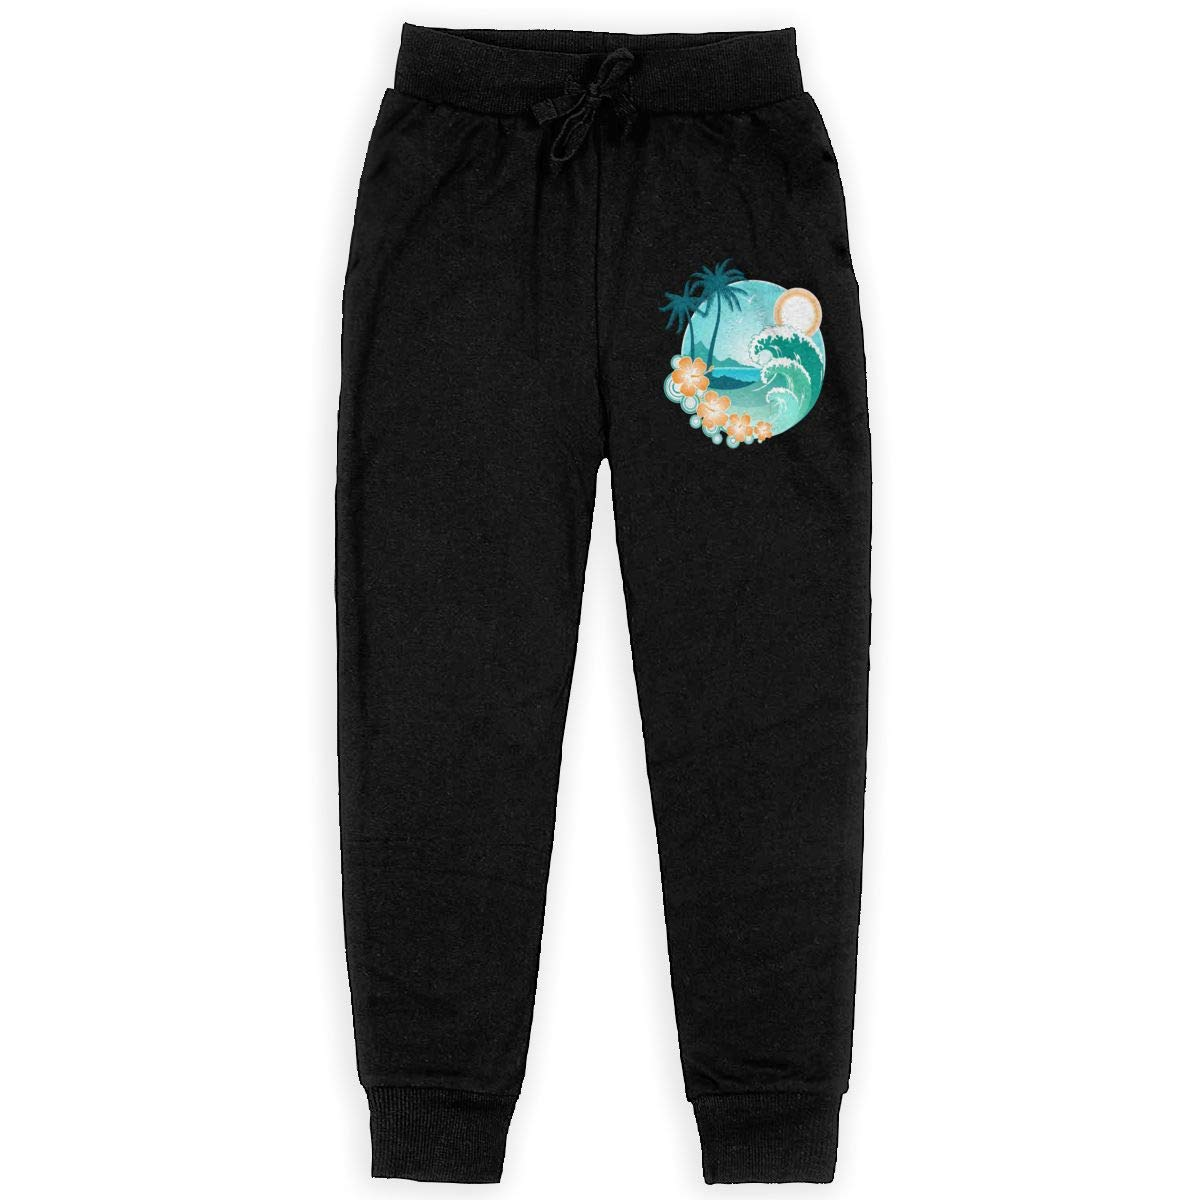 Qinf Boys Sweatpants Hawaiian Sea Beach Palm Tree Joggers Sport Training Pants Trousers Black